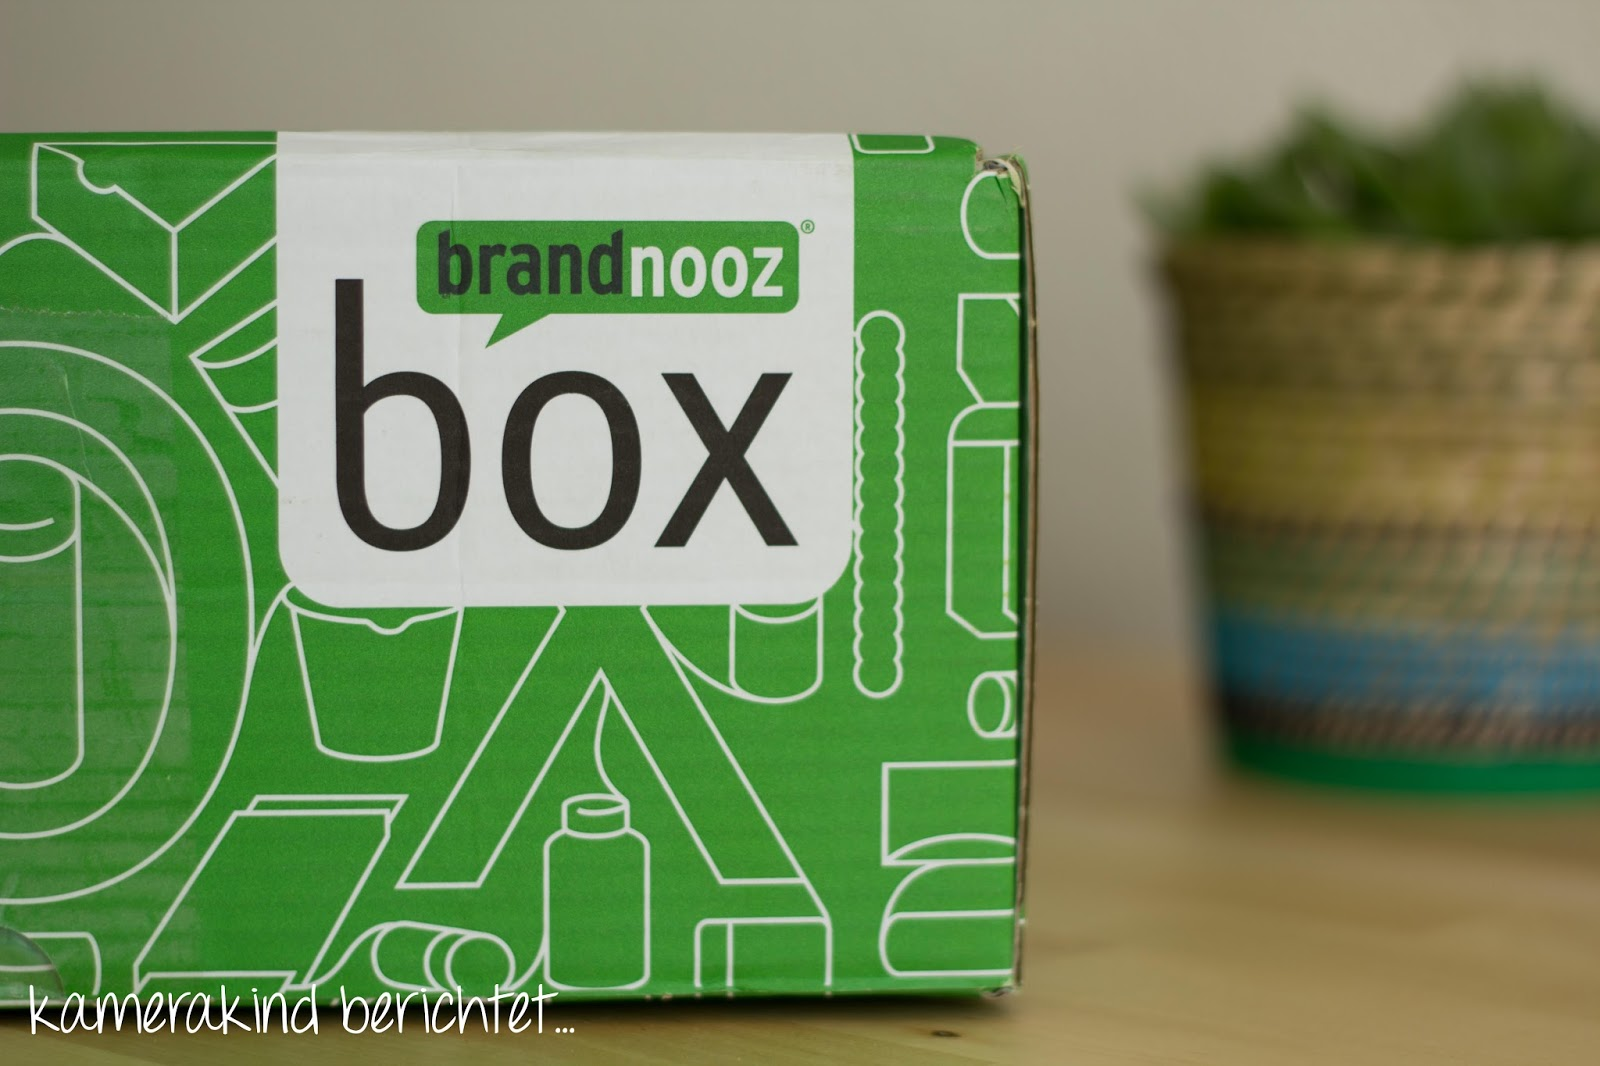 Brandnooz Box auspacken